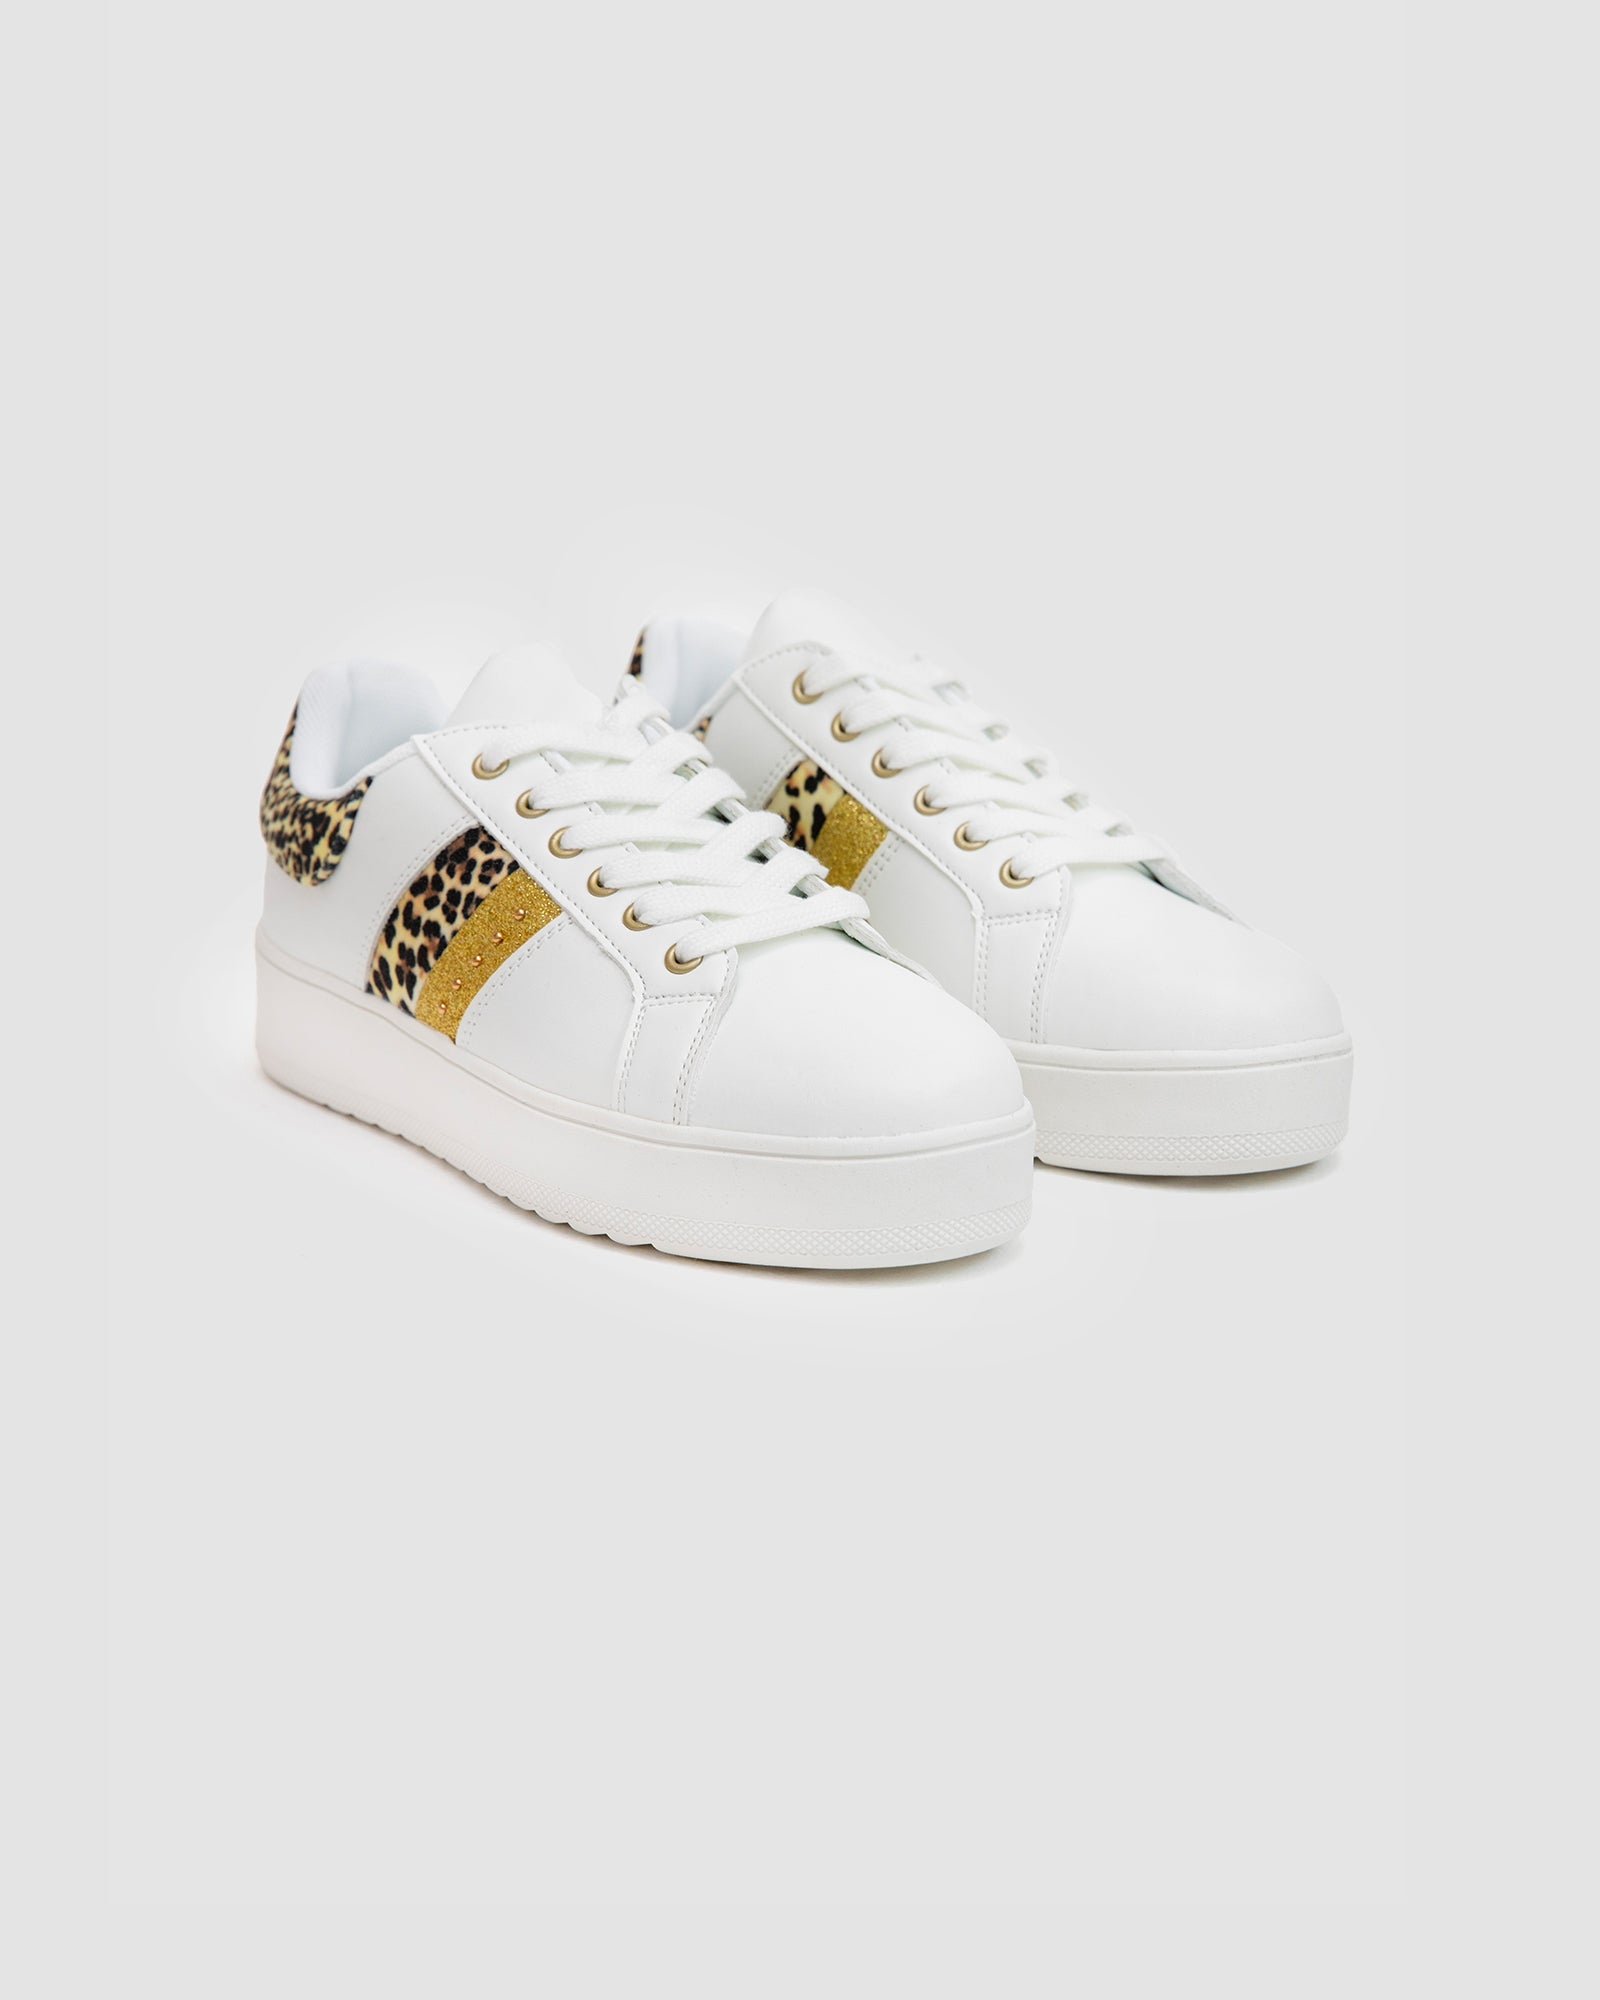 Platform Sole Sneakers with Animal Print